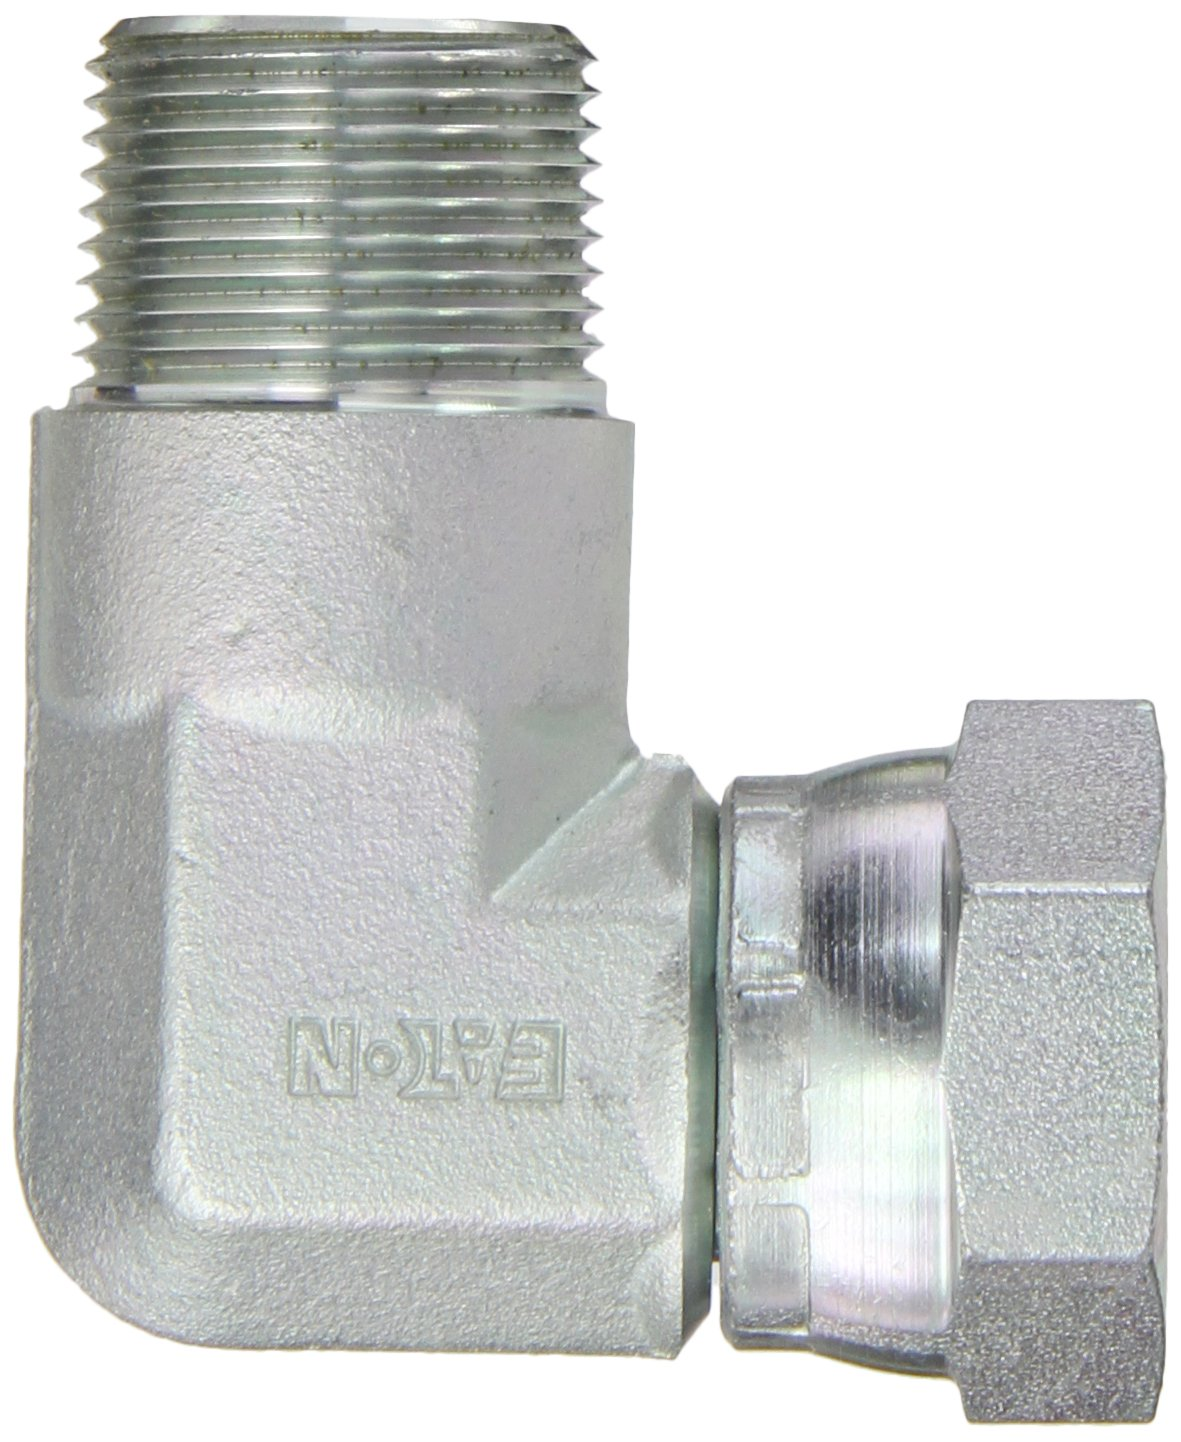 Eaton Aeroquip 2047-12-12S Steel Pipe Fitting 90 Degree Elbow 3//4 NPSM Female x 3//4 NPT Male